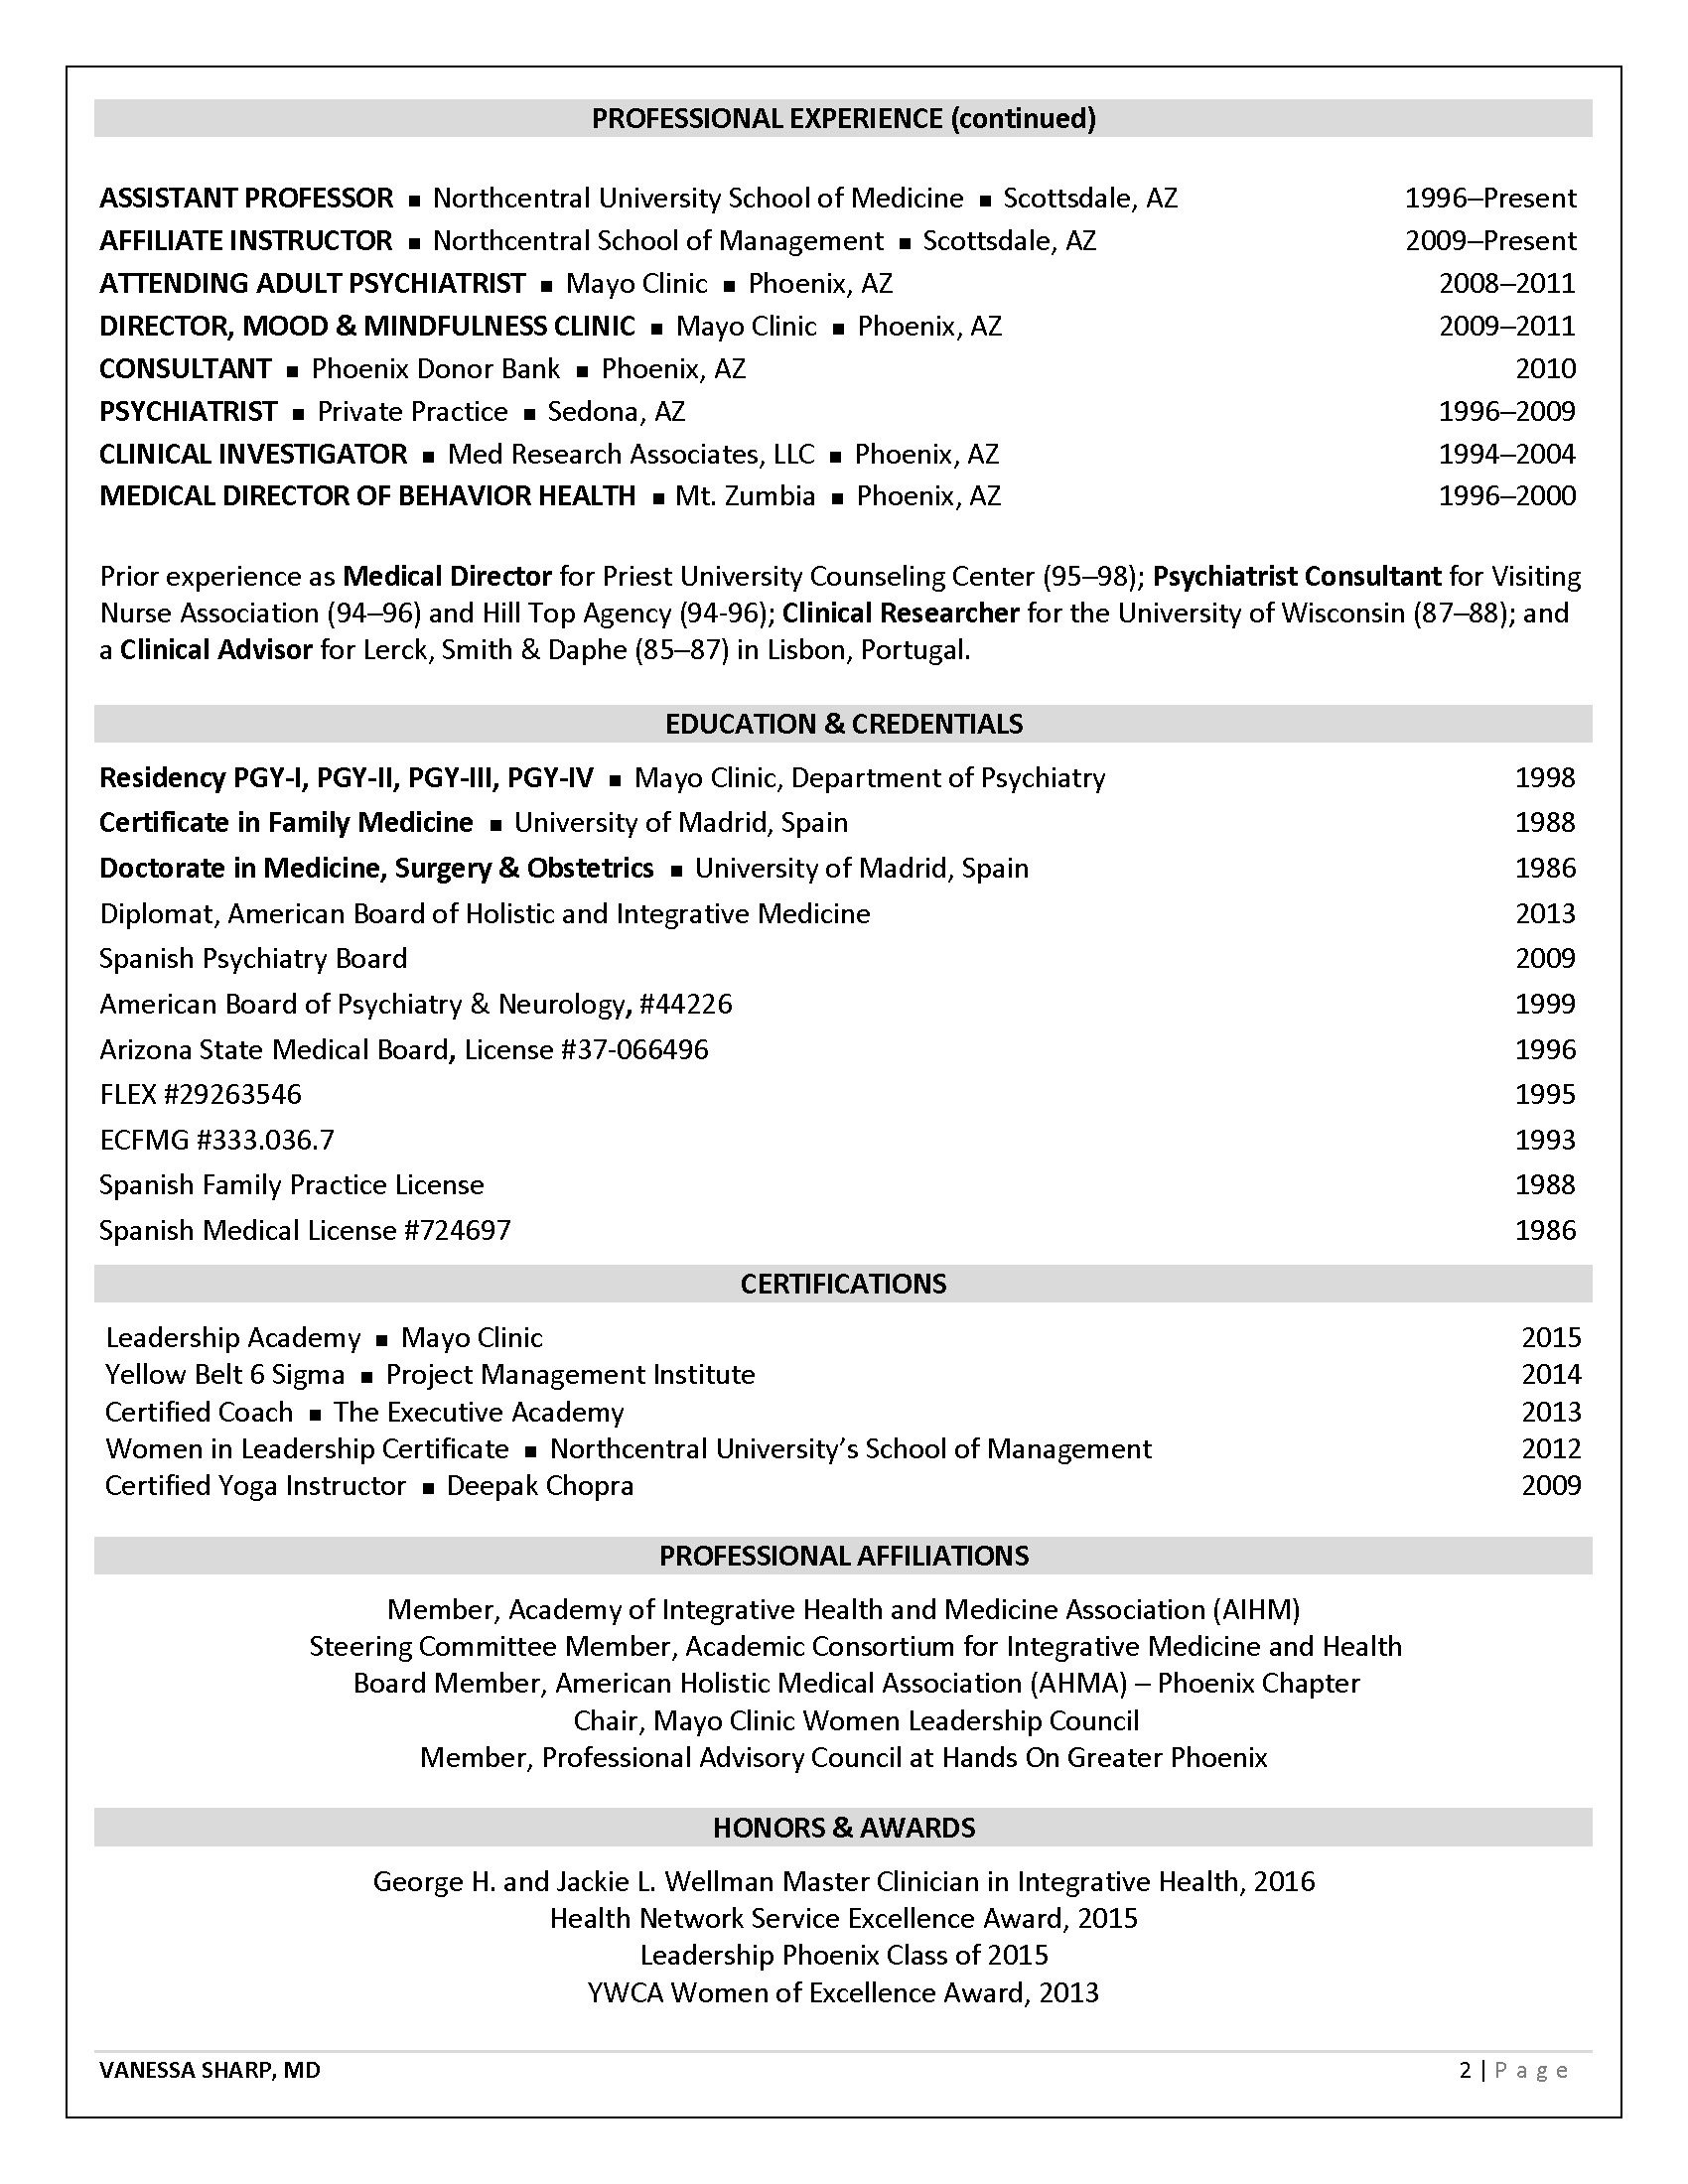 Resume Writing Resources Resume Writing Academy 3 Strategies For Executive Resumes